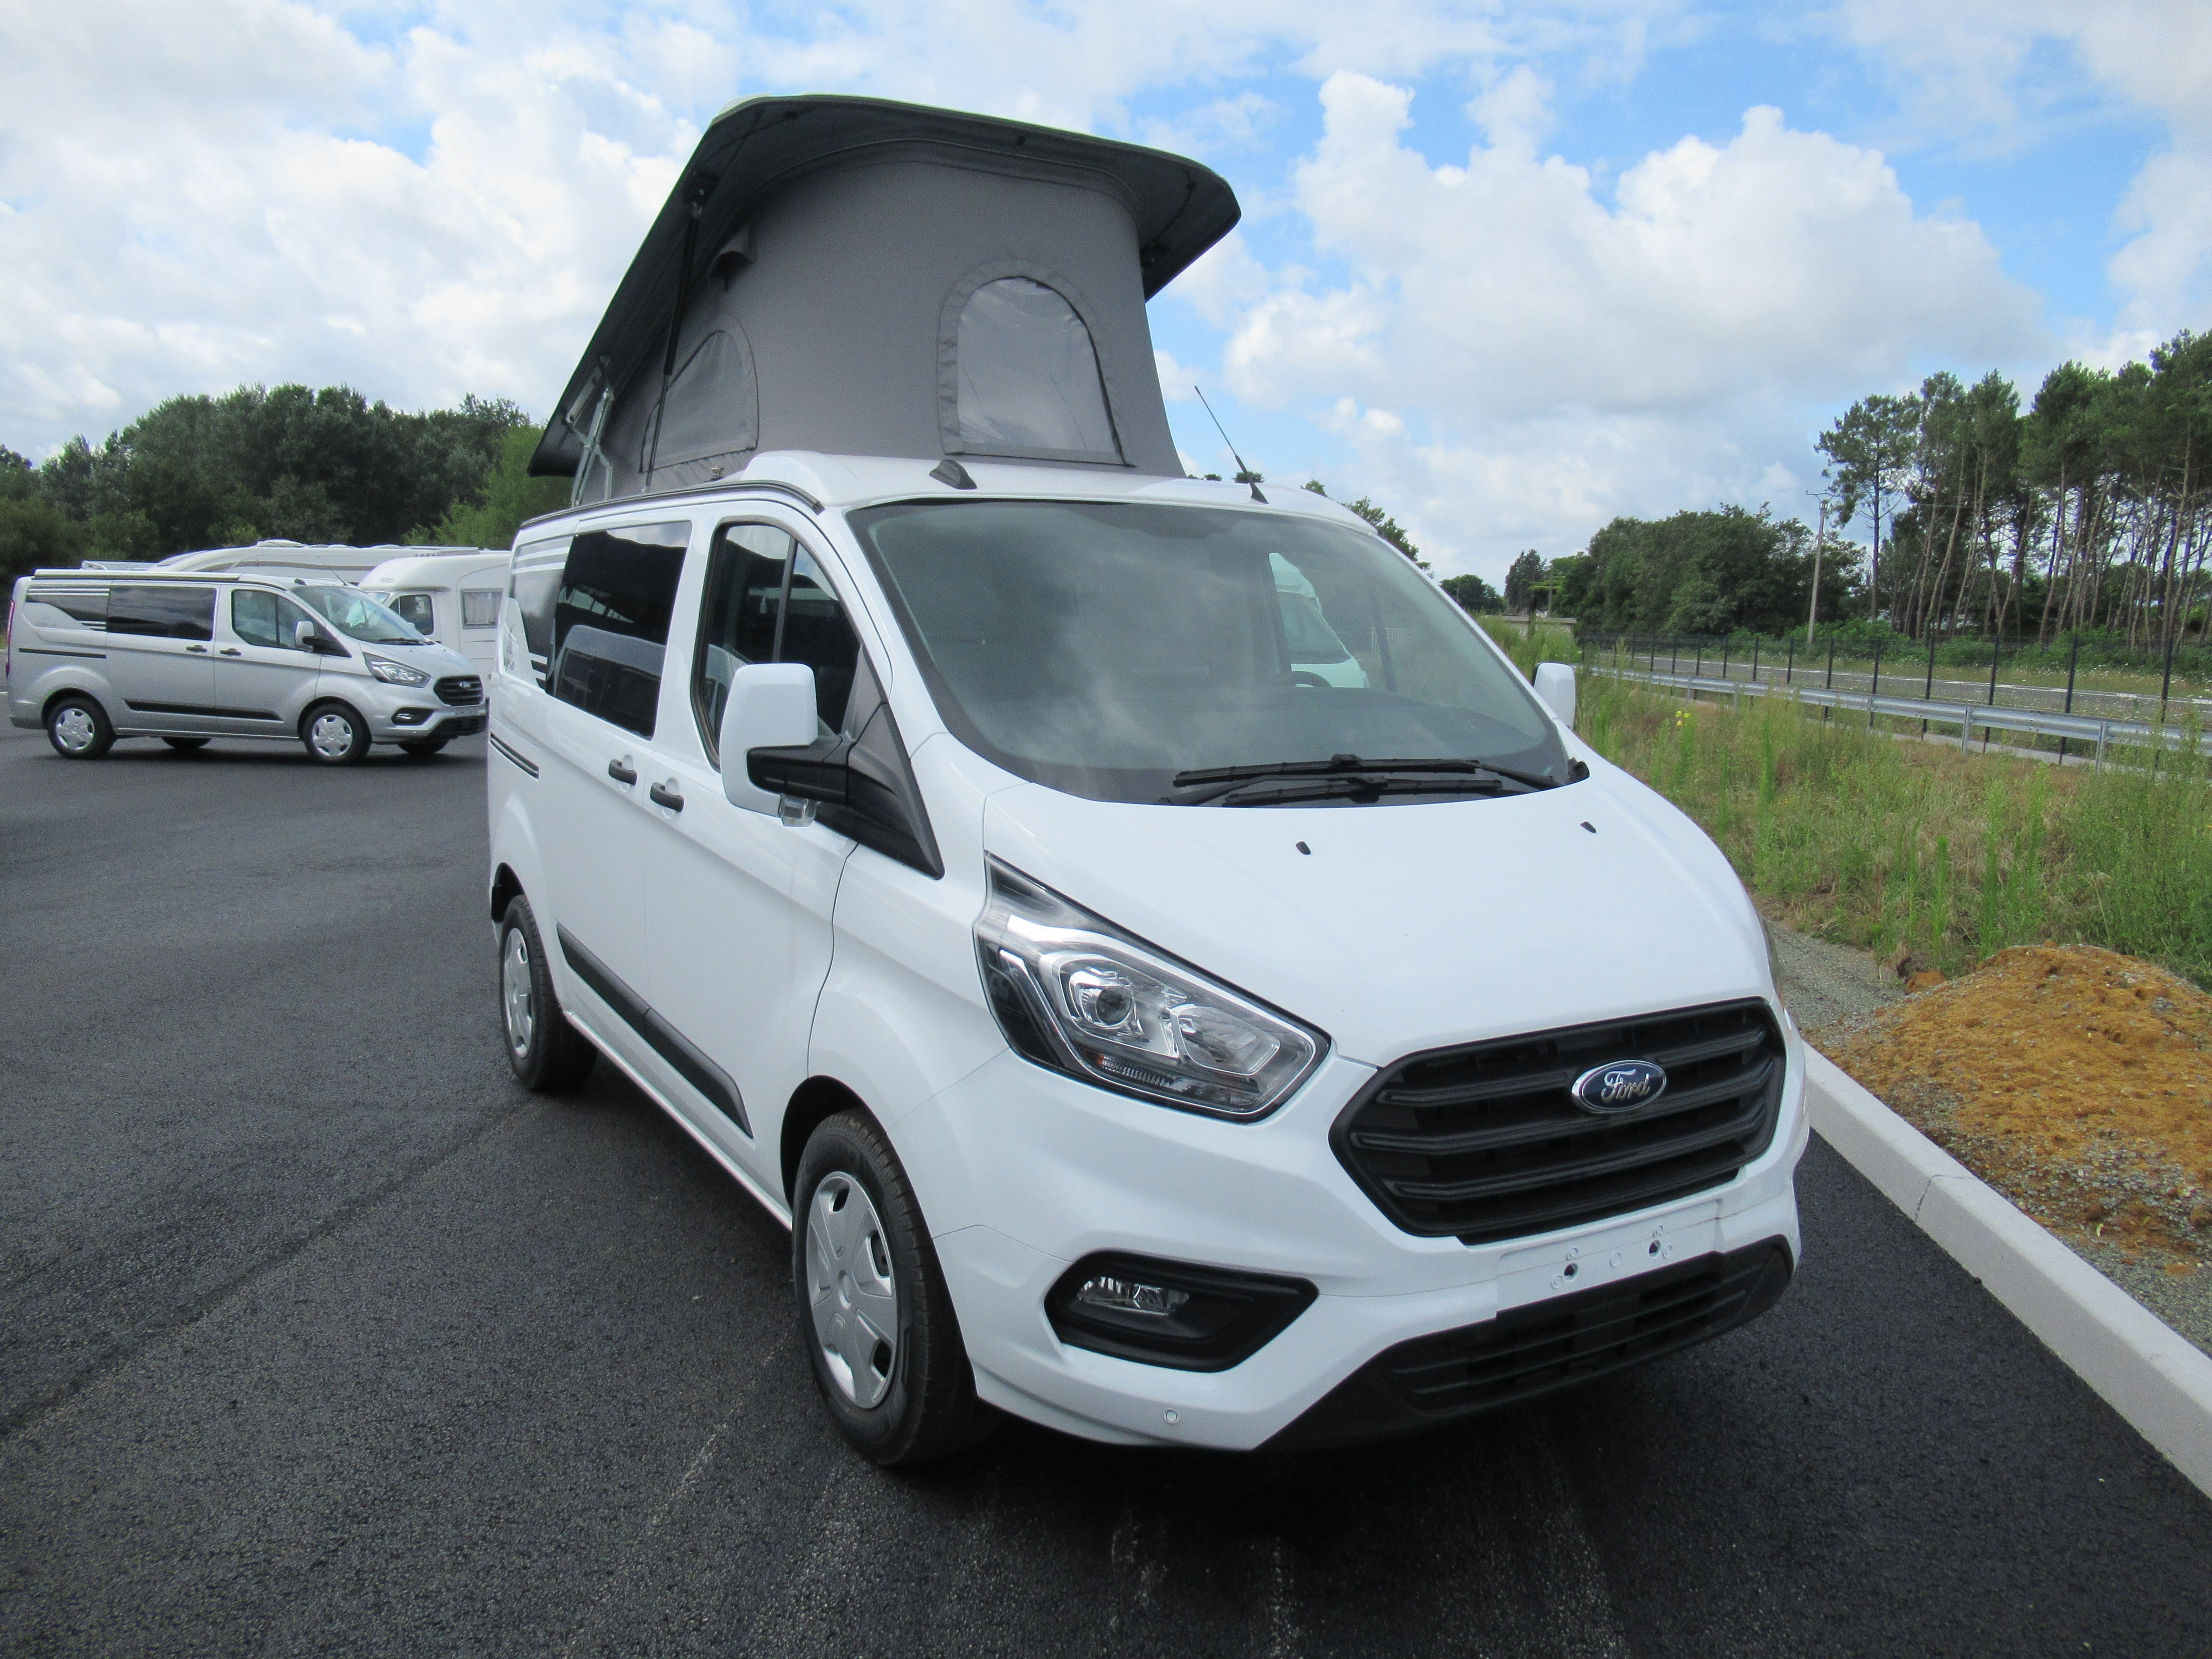 Camping-car STYLEVAN AUCKLAND